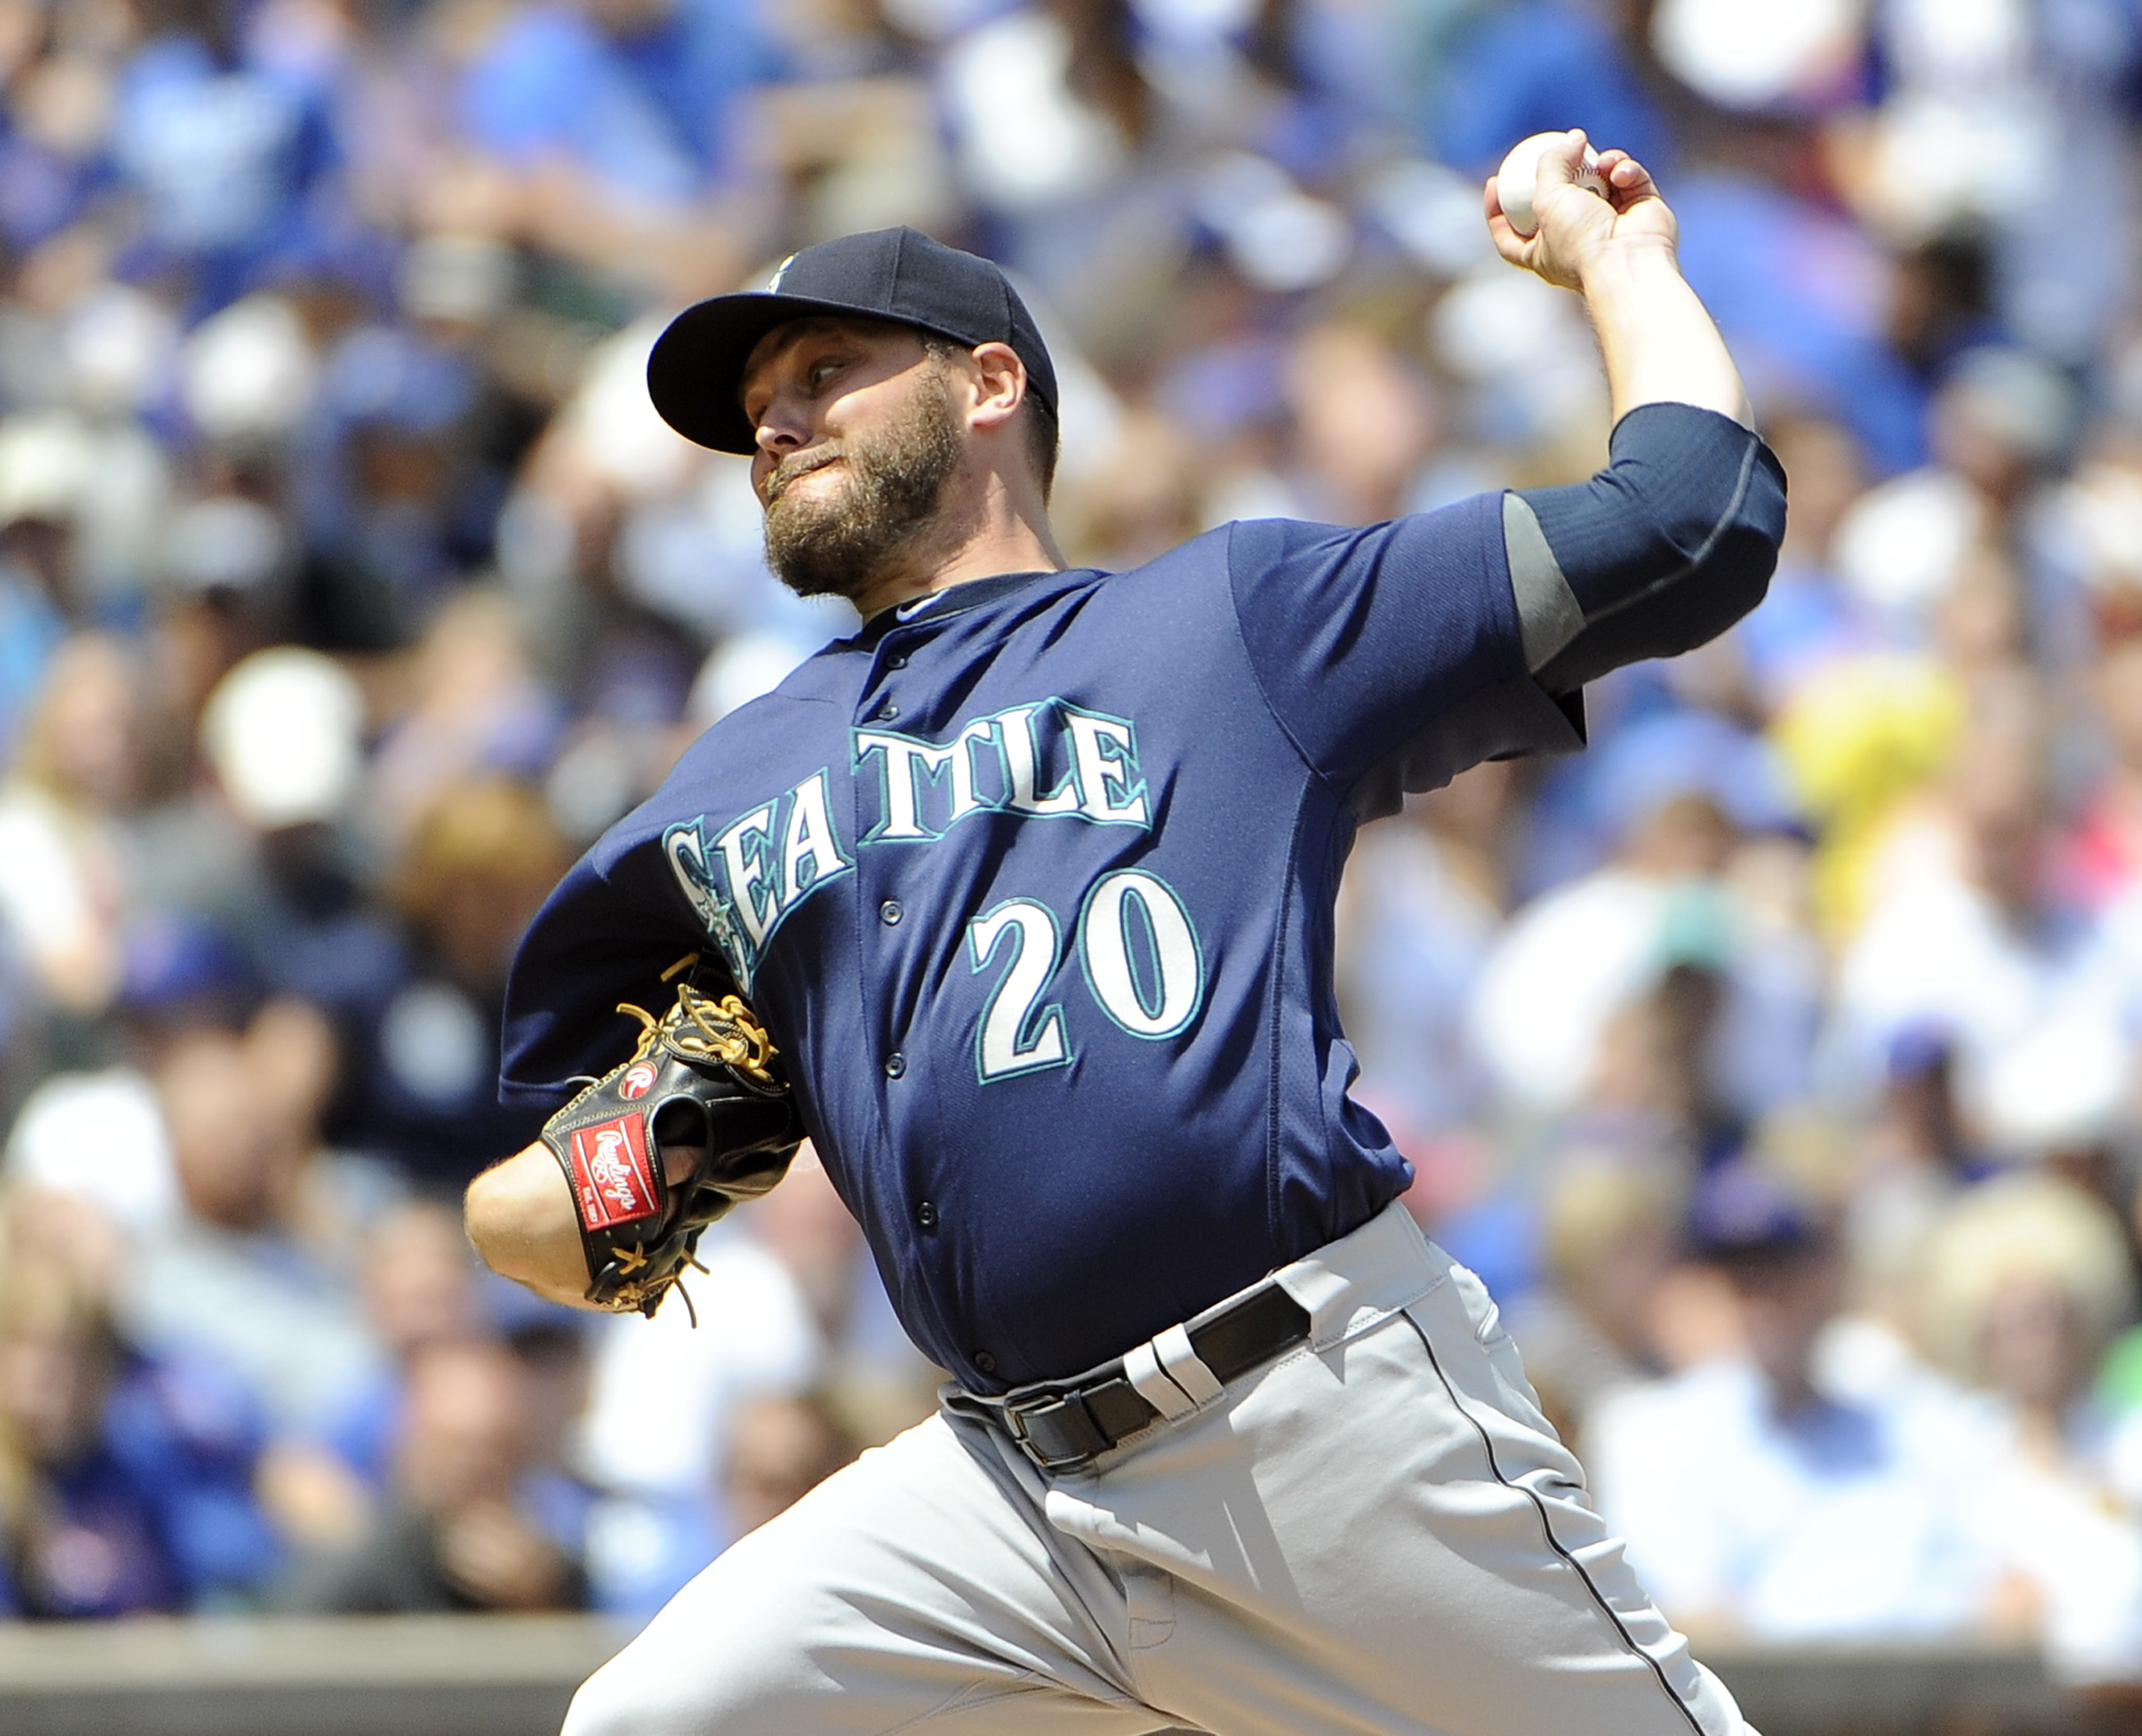 Seattle Mariners starting pitcher Wade Miley (20) throws against the Chicago Cubs during the first inning of an interleague baseball game, Saturday, July 30, 2016, in Chicago. (AP Photo/David Banks)